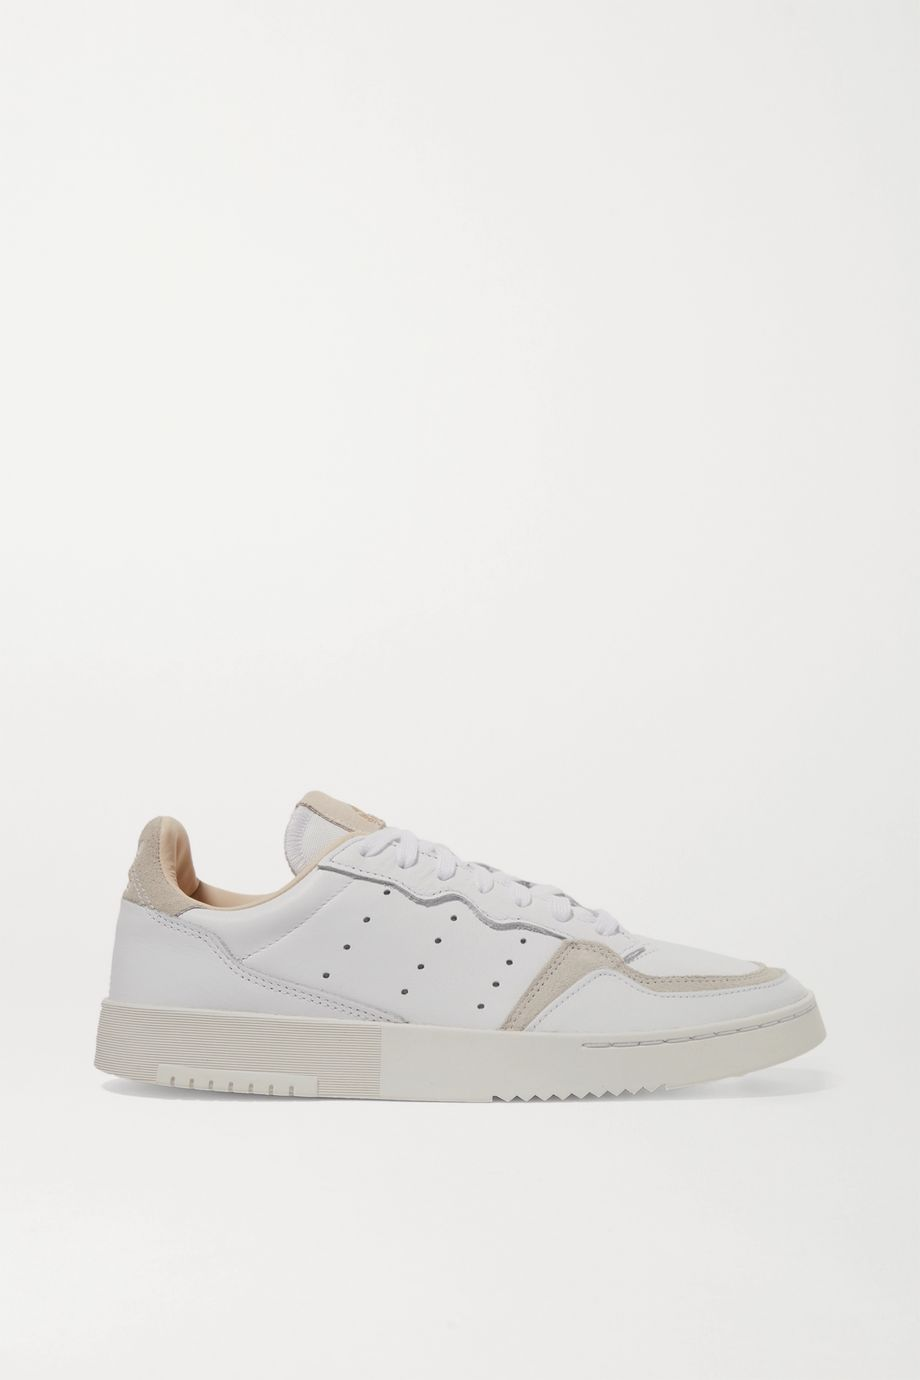 adidas Originals Supercourt suede-trimmed leather sneakers